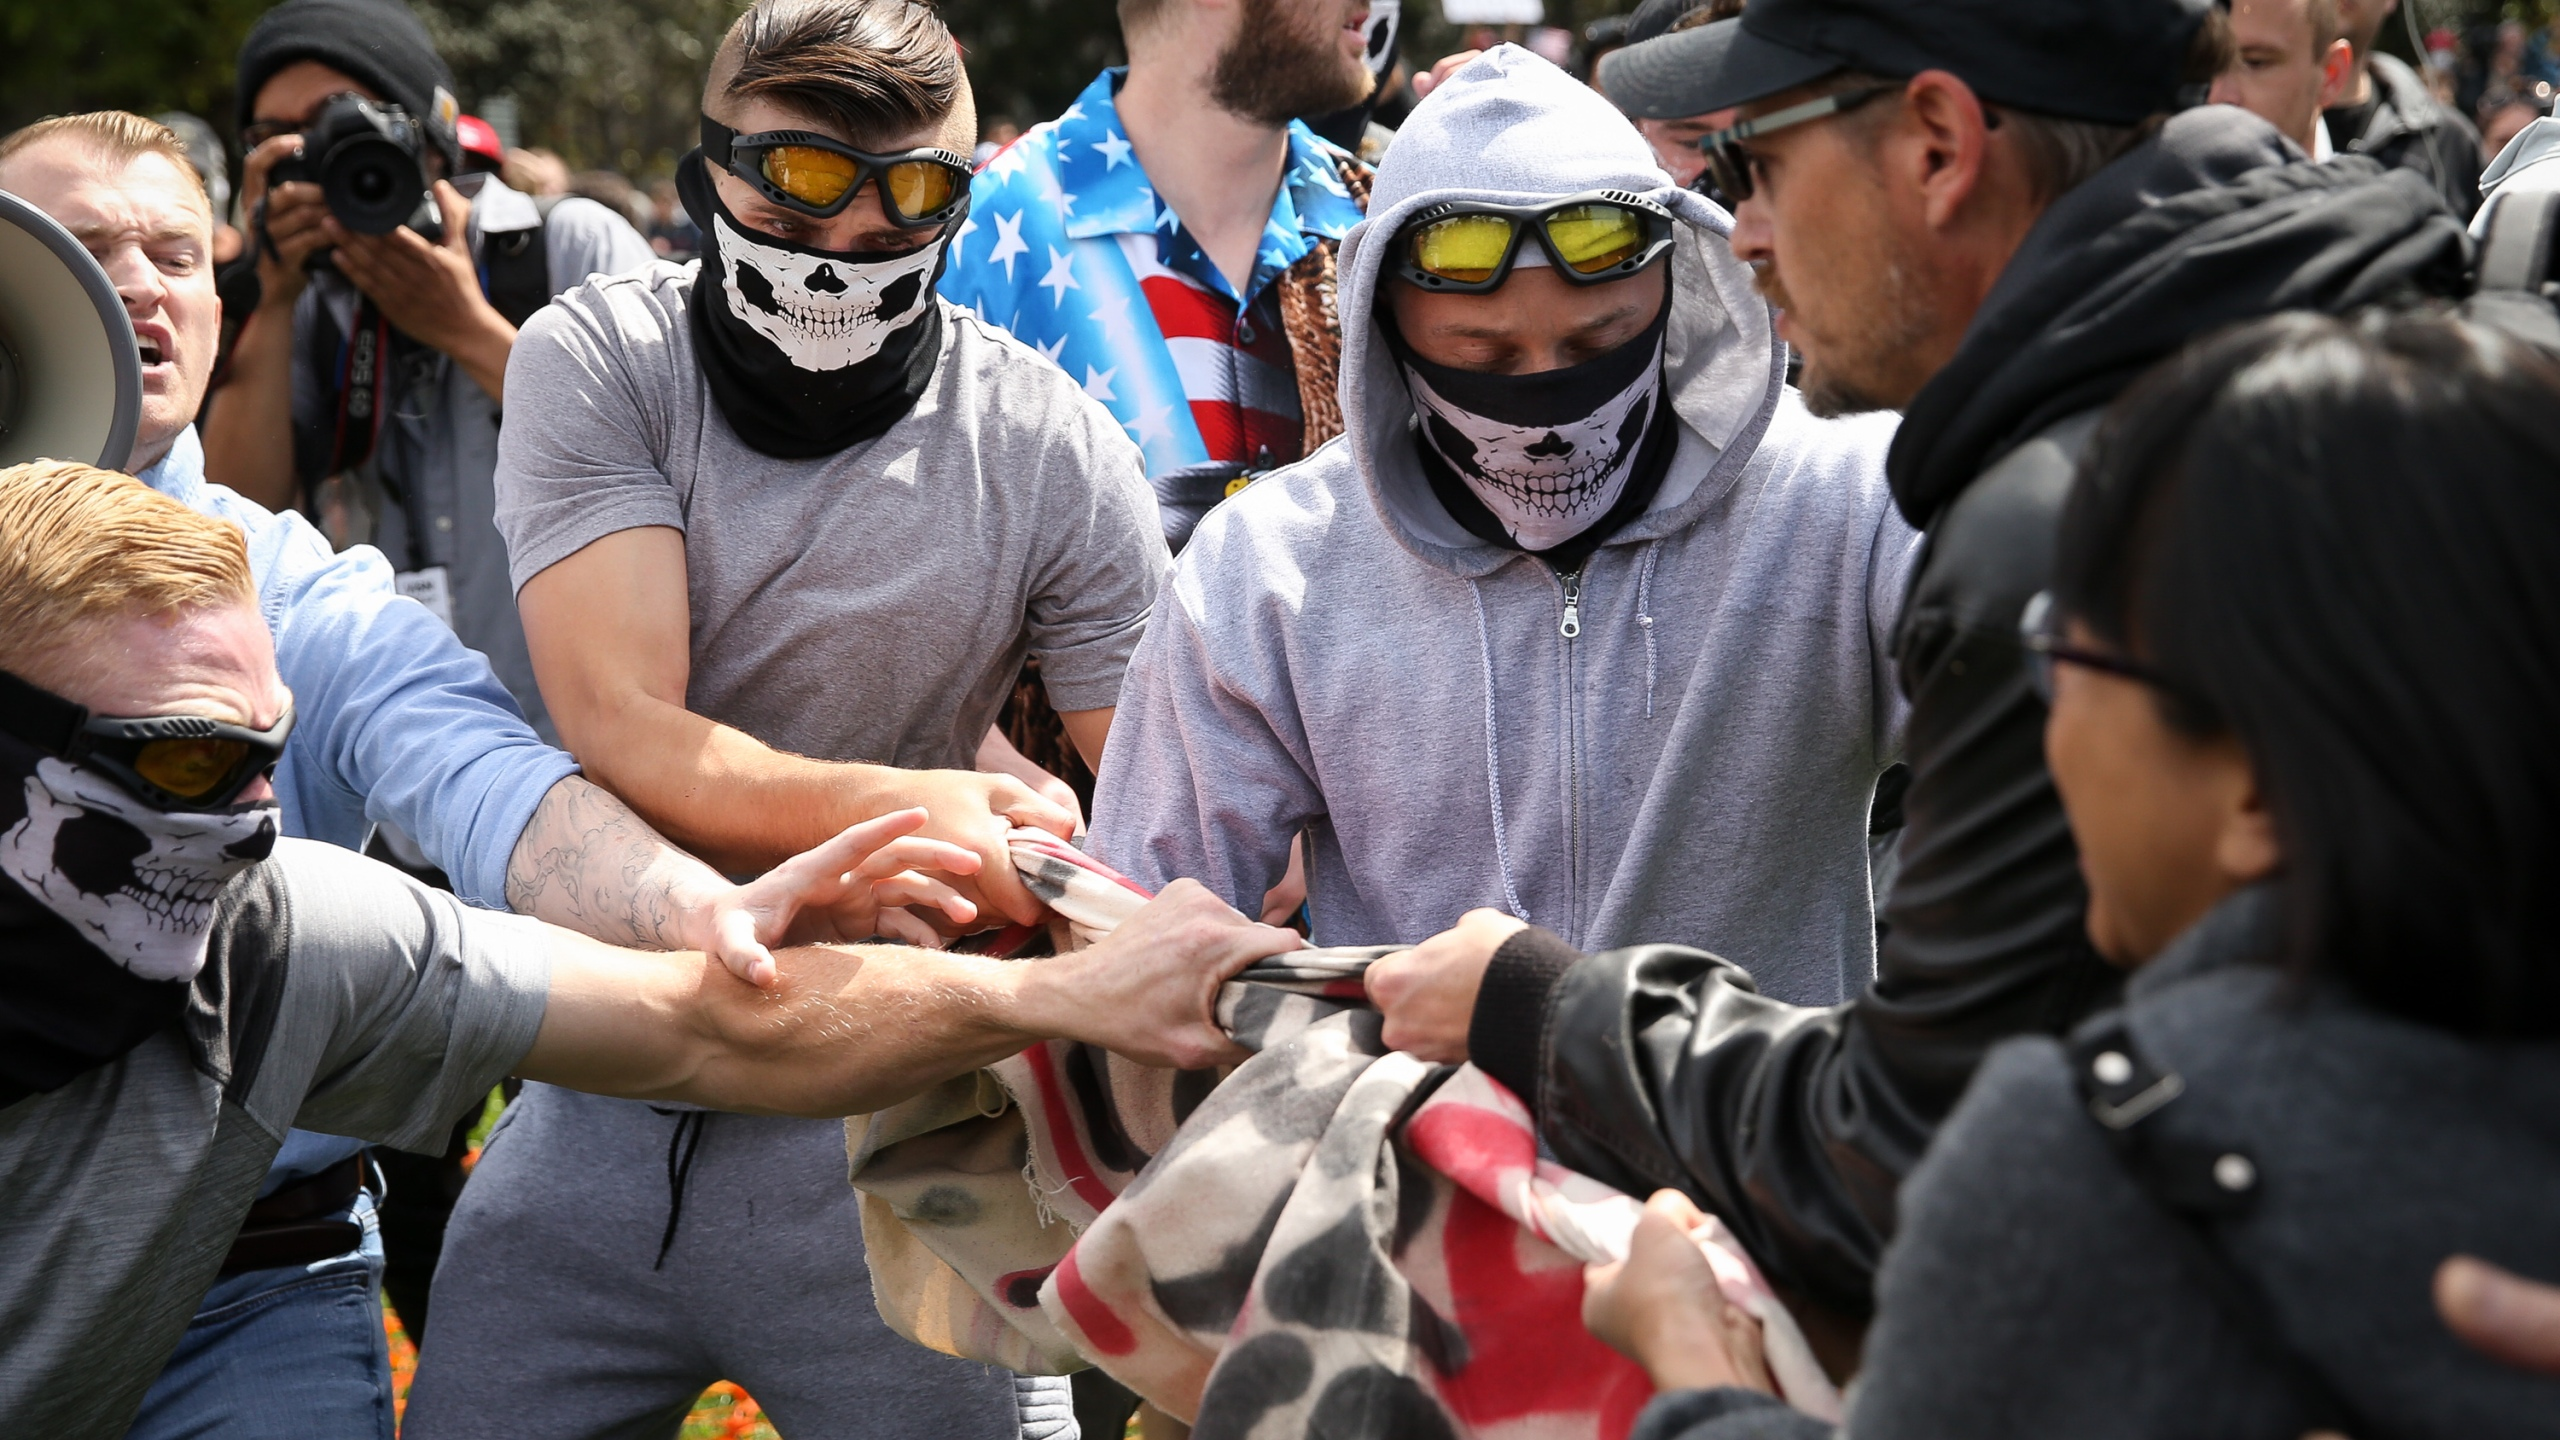 """Trump supporters clash with protesters at a """"Patriots Day"""" free speech rally on April 15, 2017 in Berkeley. (Credit: Elijah Nouvelage/Getty Images)"""